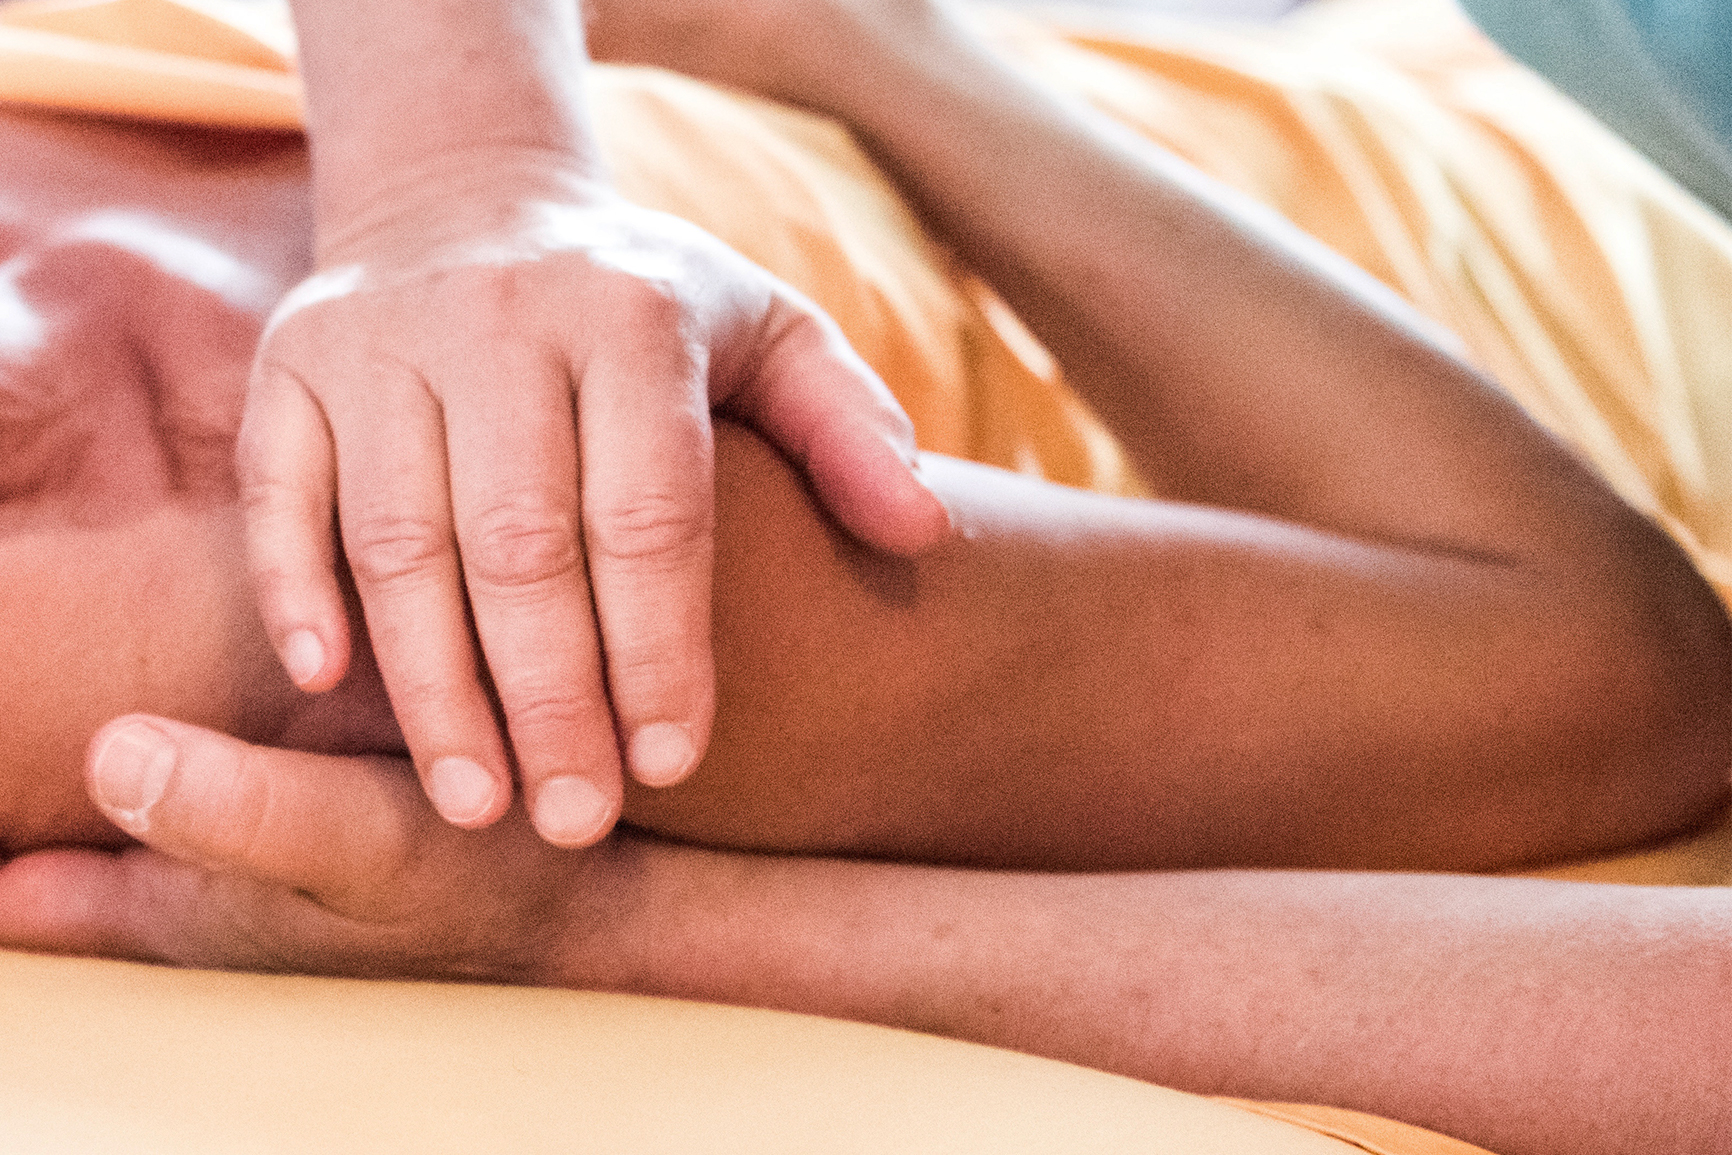 Somatic Healing Arts Massage in Zürich - Rolfing